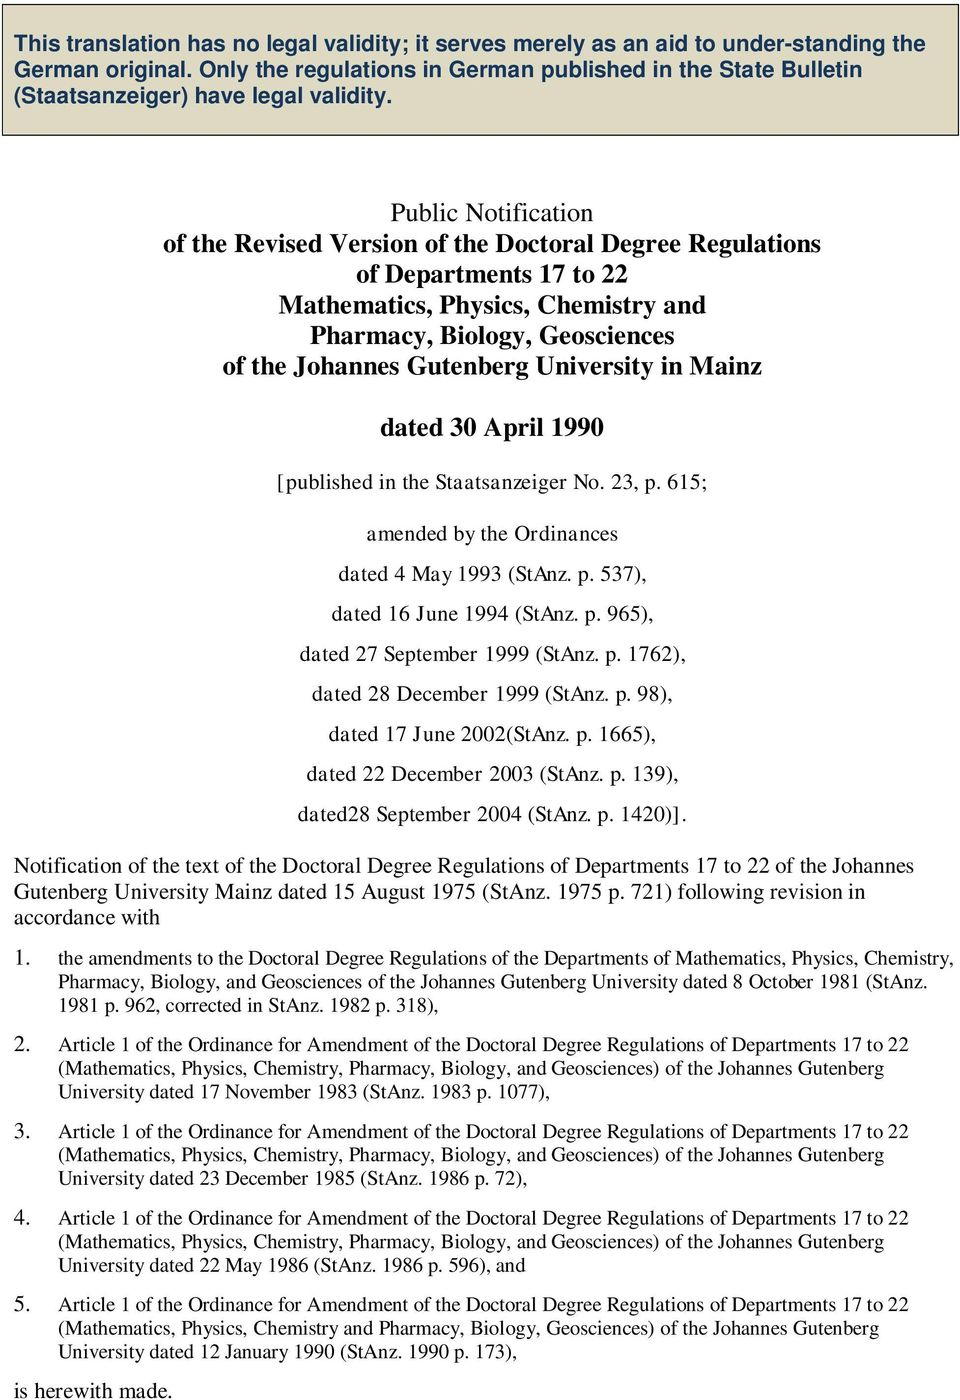 Public Notification of the Revised Version of the Doctoral Degree Regulations of Departments 17 to 22 Mathematics, Physics, Chemistry and Pharmacy, Biology, Geosciences of the Johannes Gutenberg